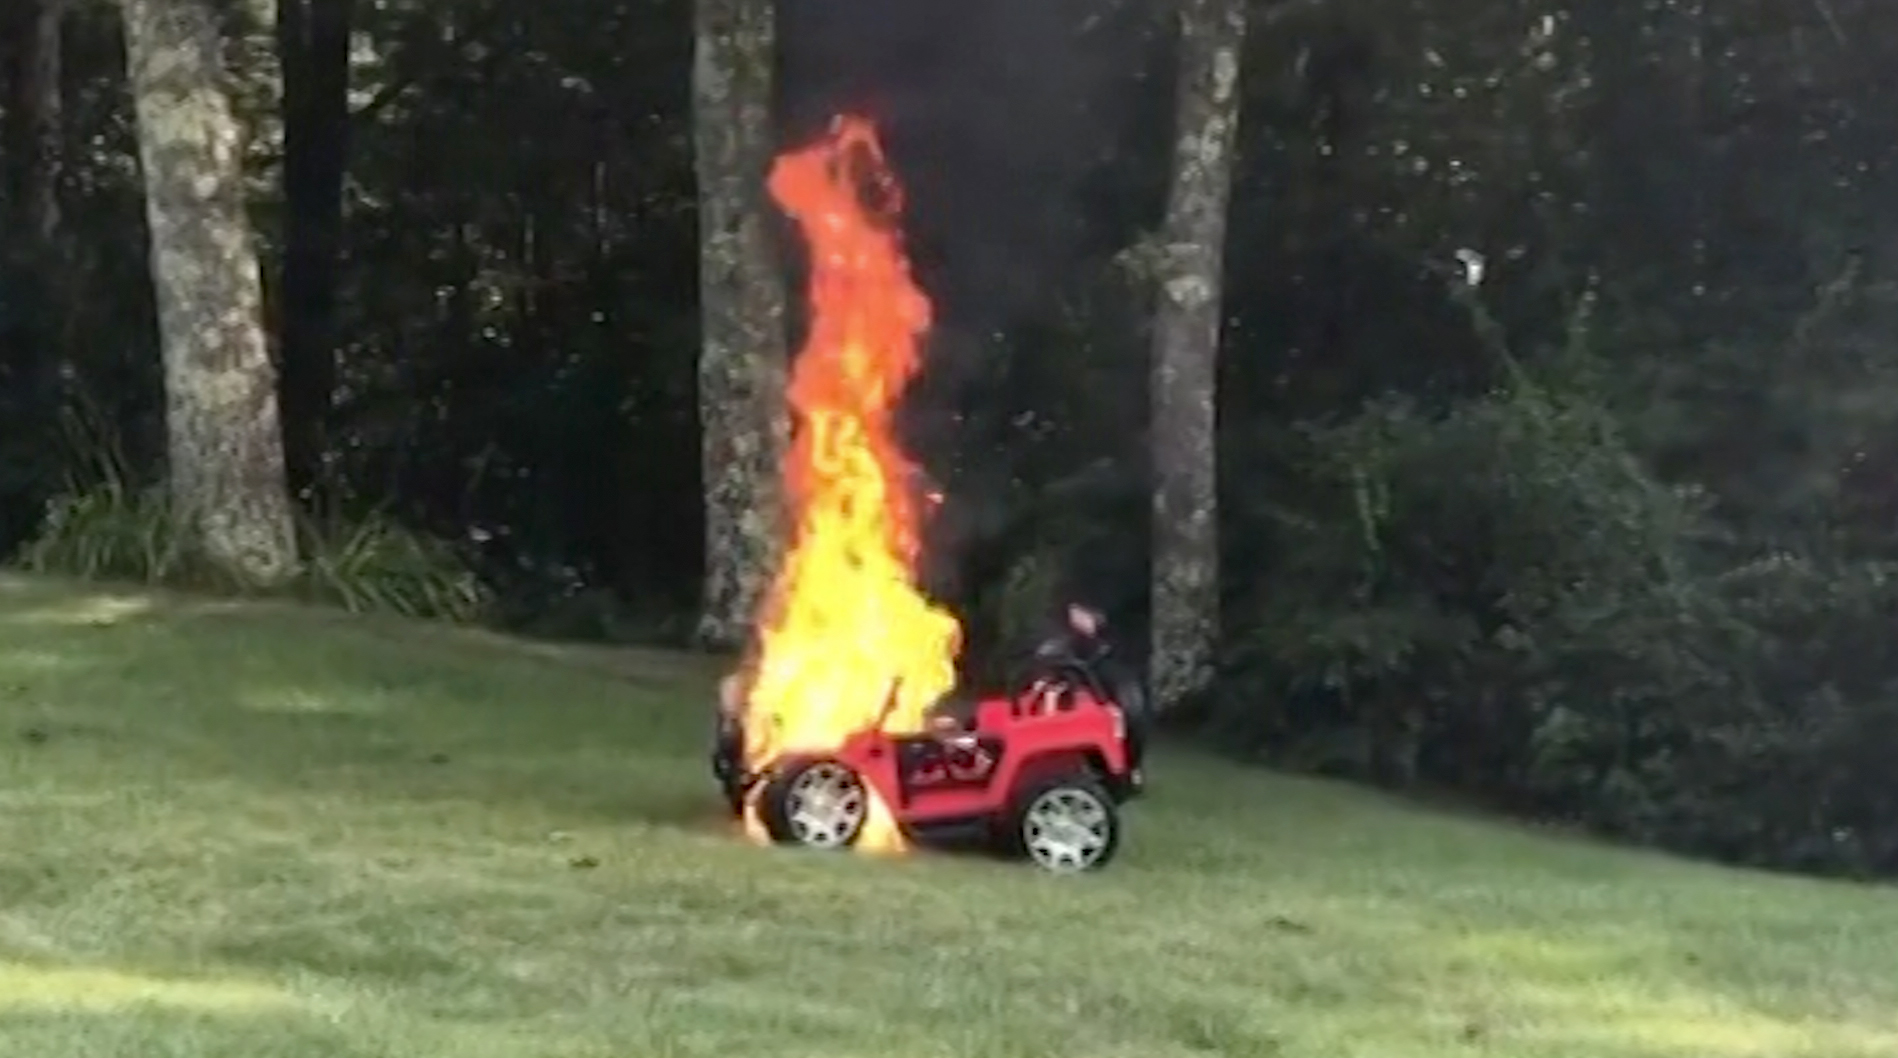 mom rescues kids just before toy car fire - cnn video